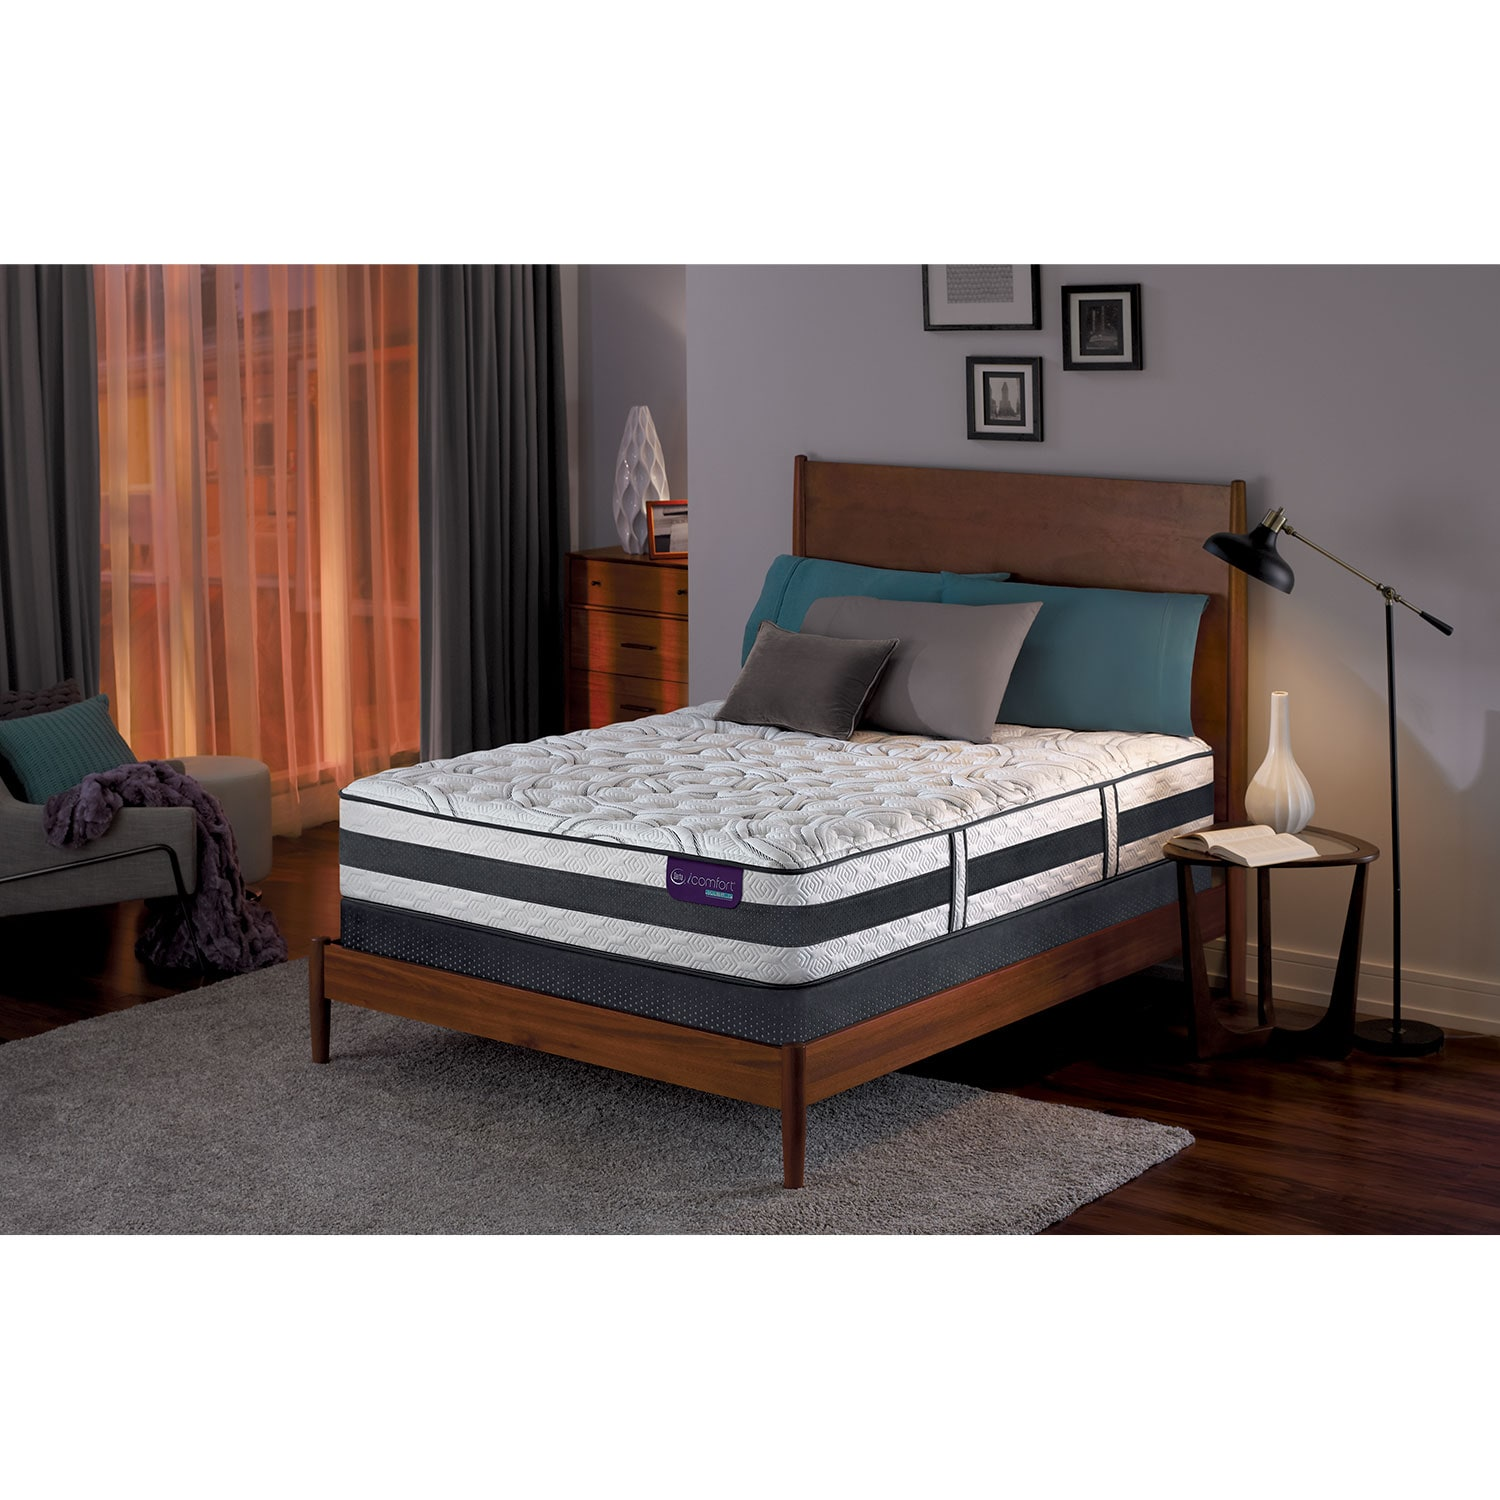 Applause II Firm Queen Mattress and Foundation Set